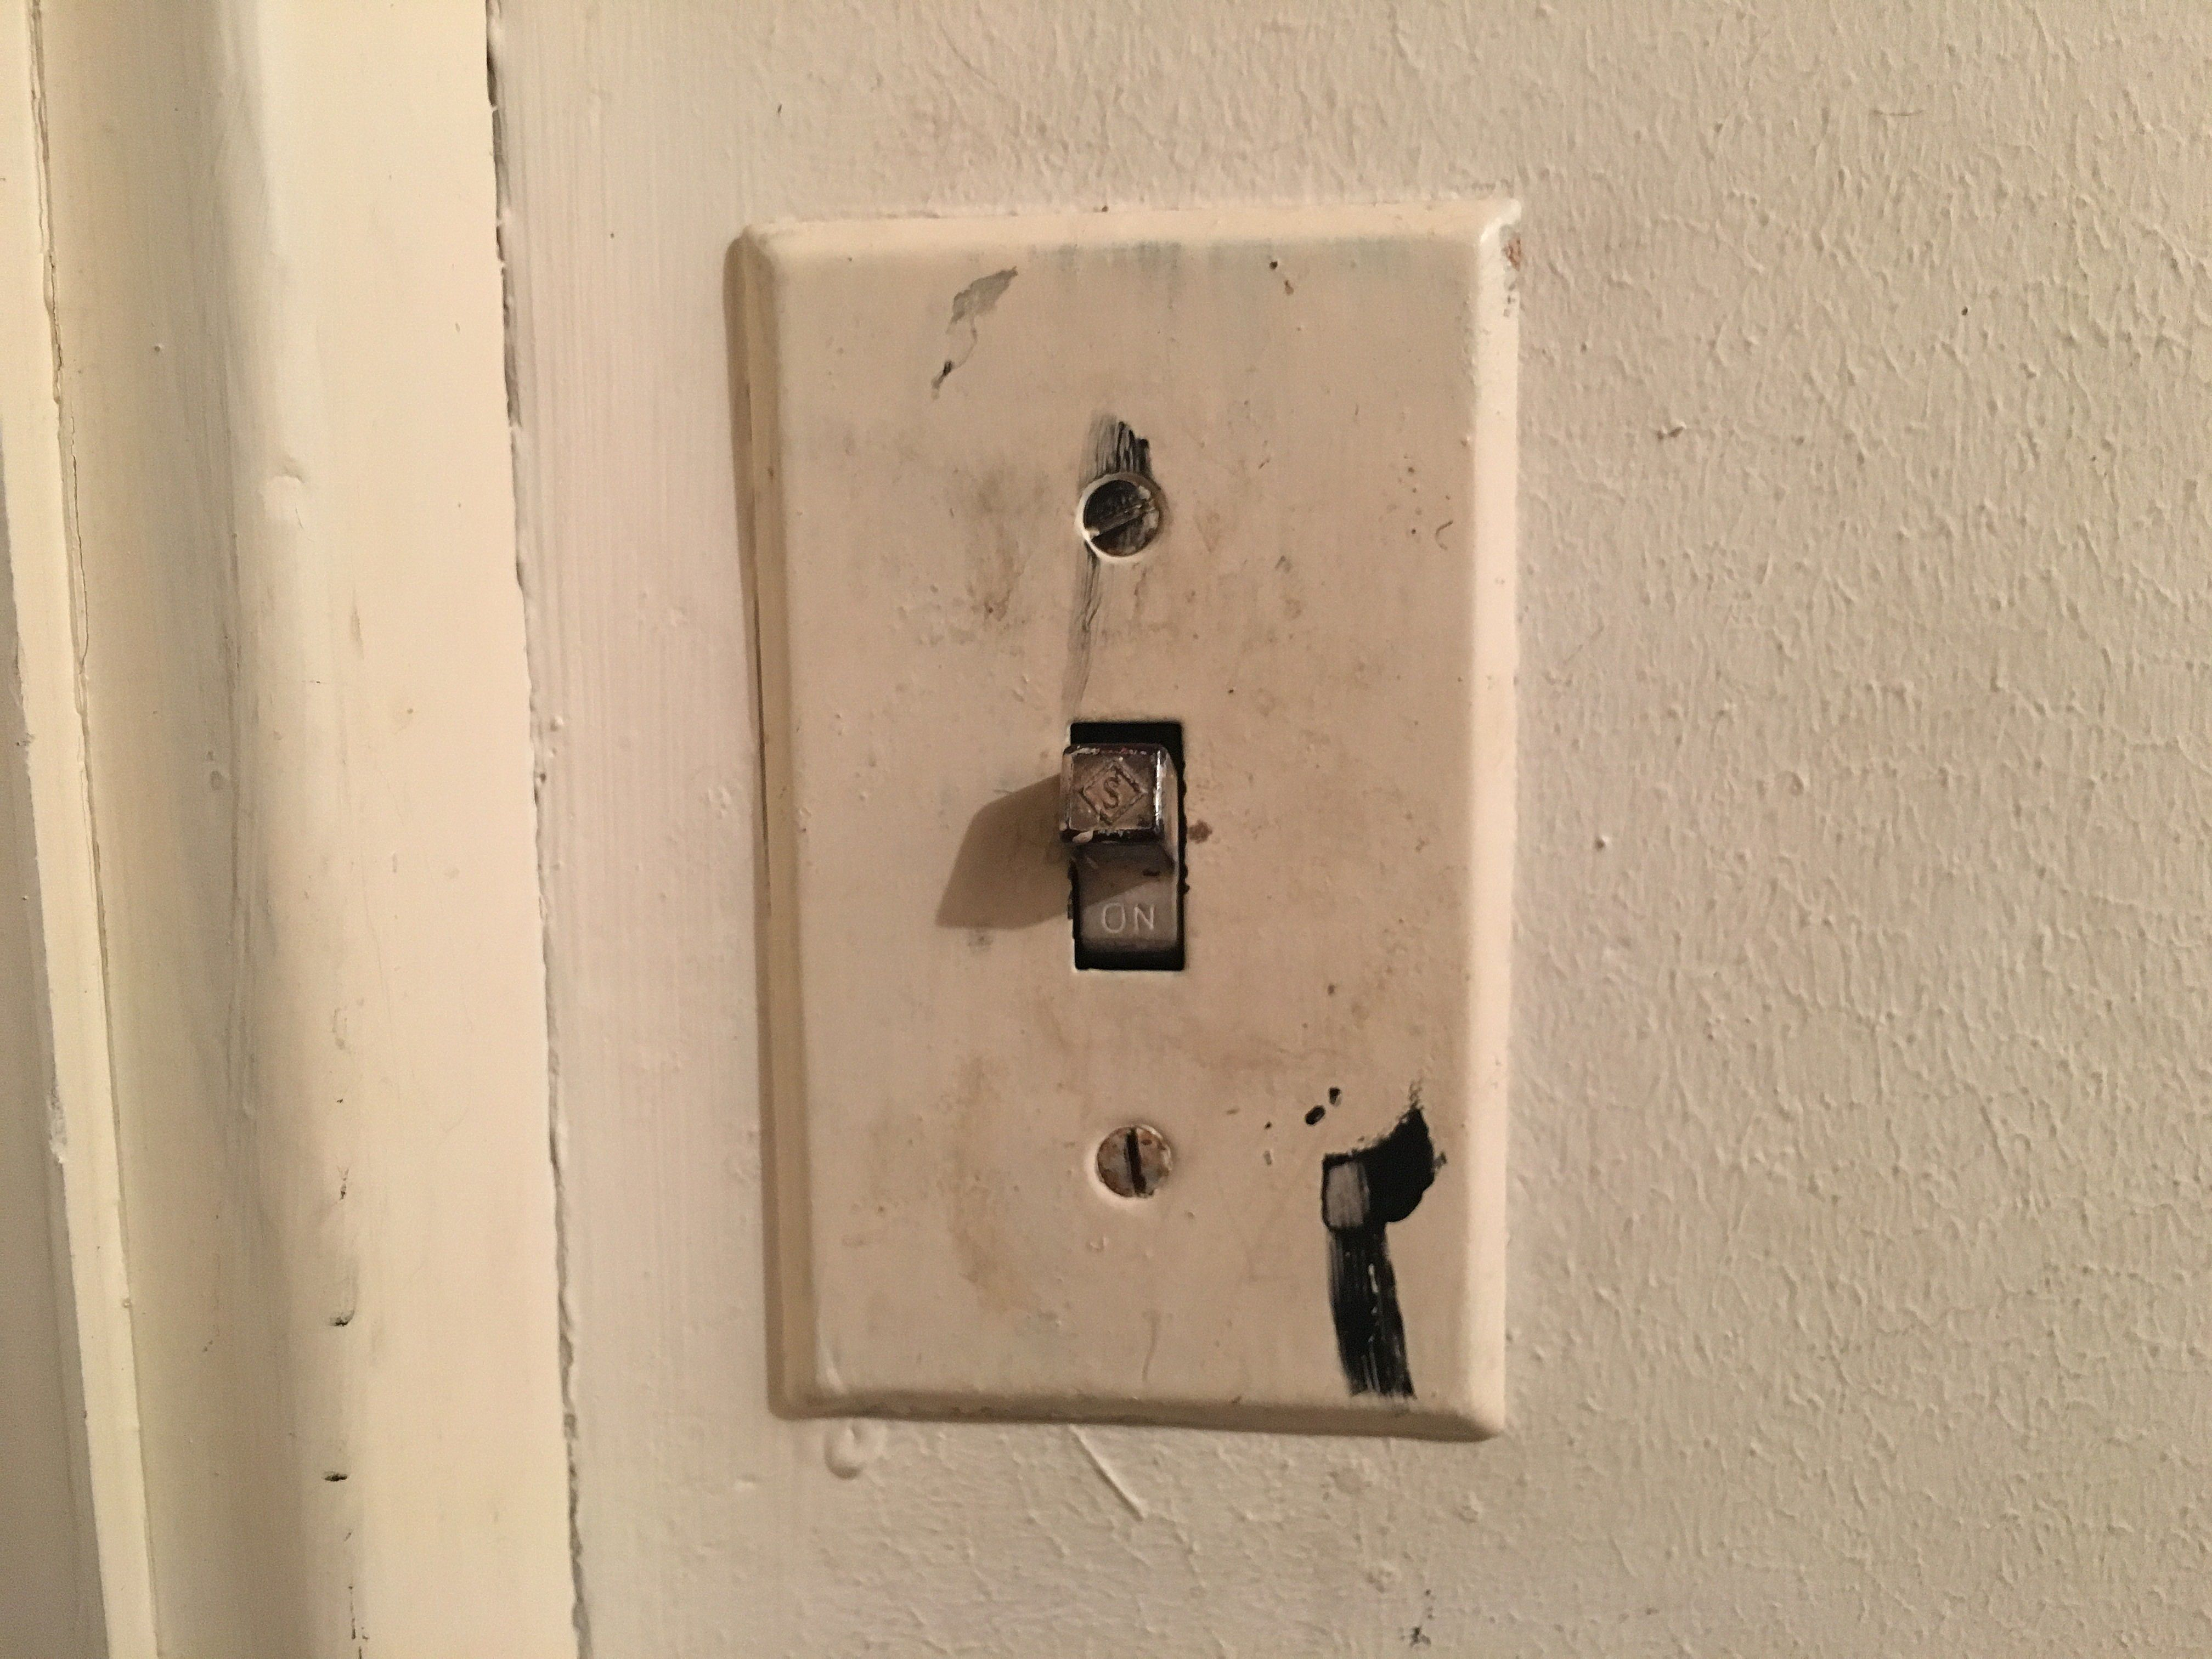 Four Light Switch Plate Replacing A Toggle Light Switch With A Rocker Switch